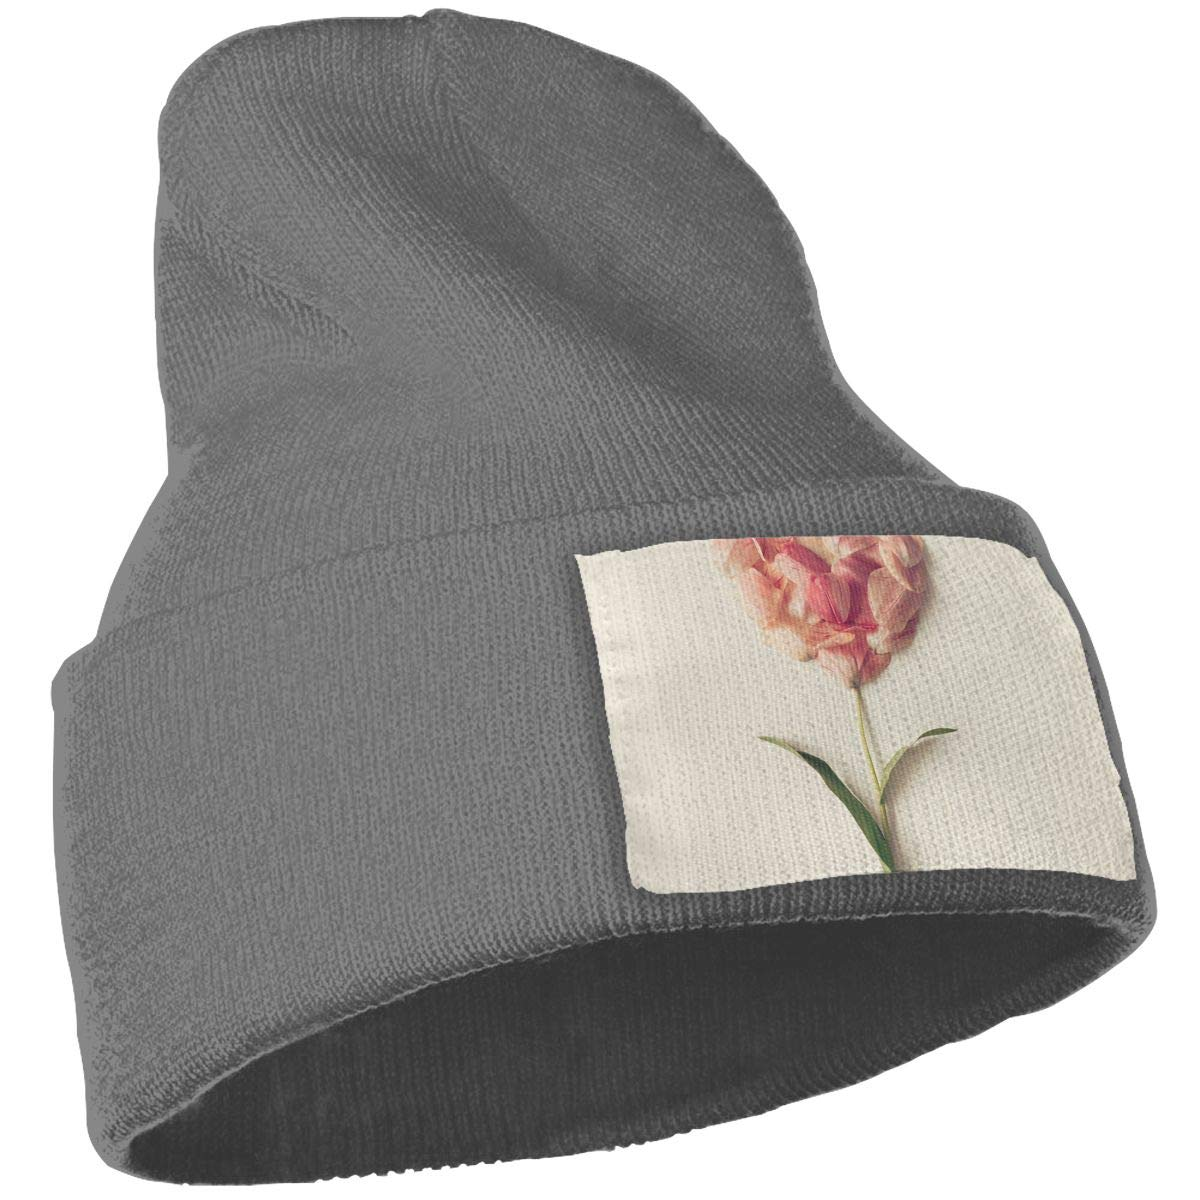 Flower in Shape of A Heart Made of Tulip Petals Unisex Fashion Knitted Hat Luxury Hip-Hop Cap